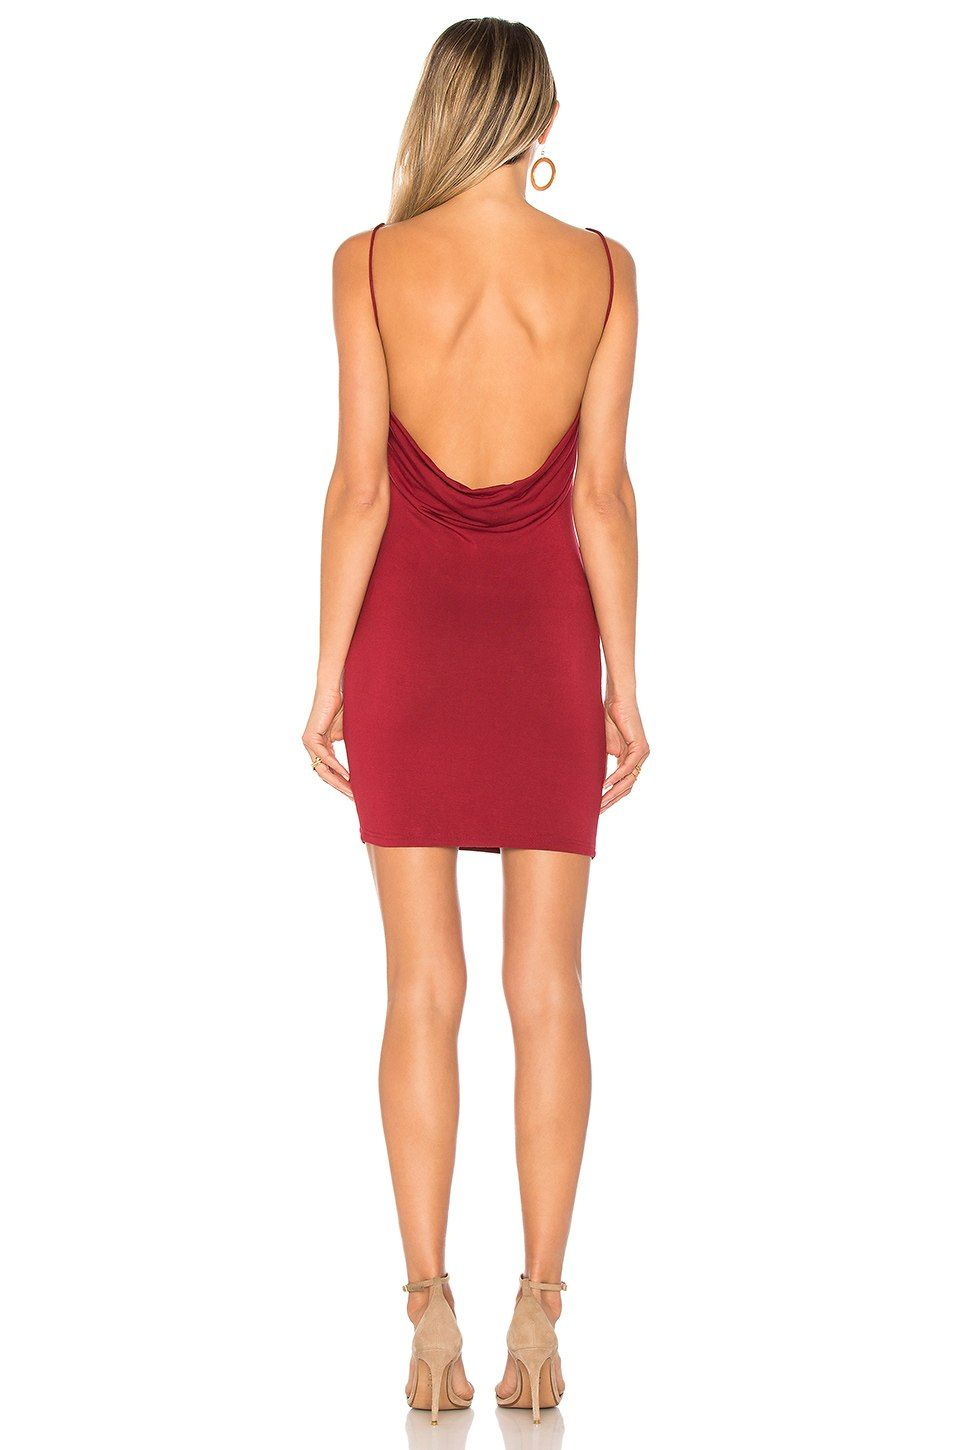 Petra Backless Mini Dress in Rose. - size L (also in M,S,XL,XS) by the way.